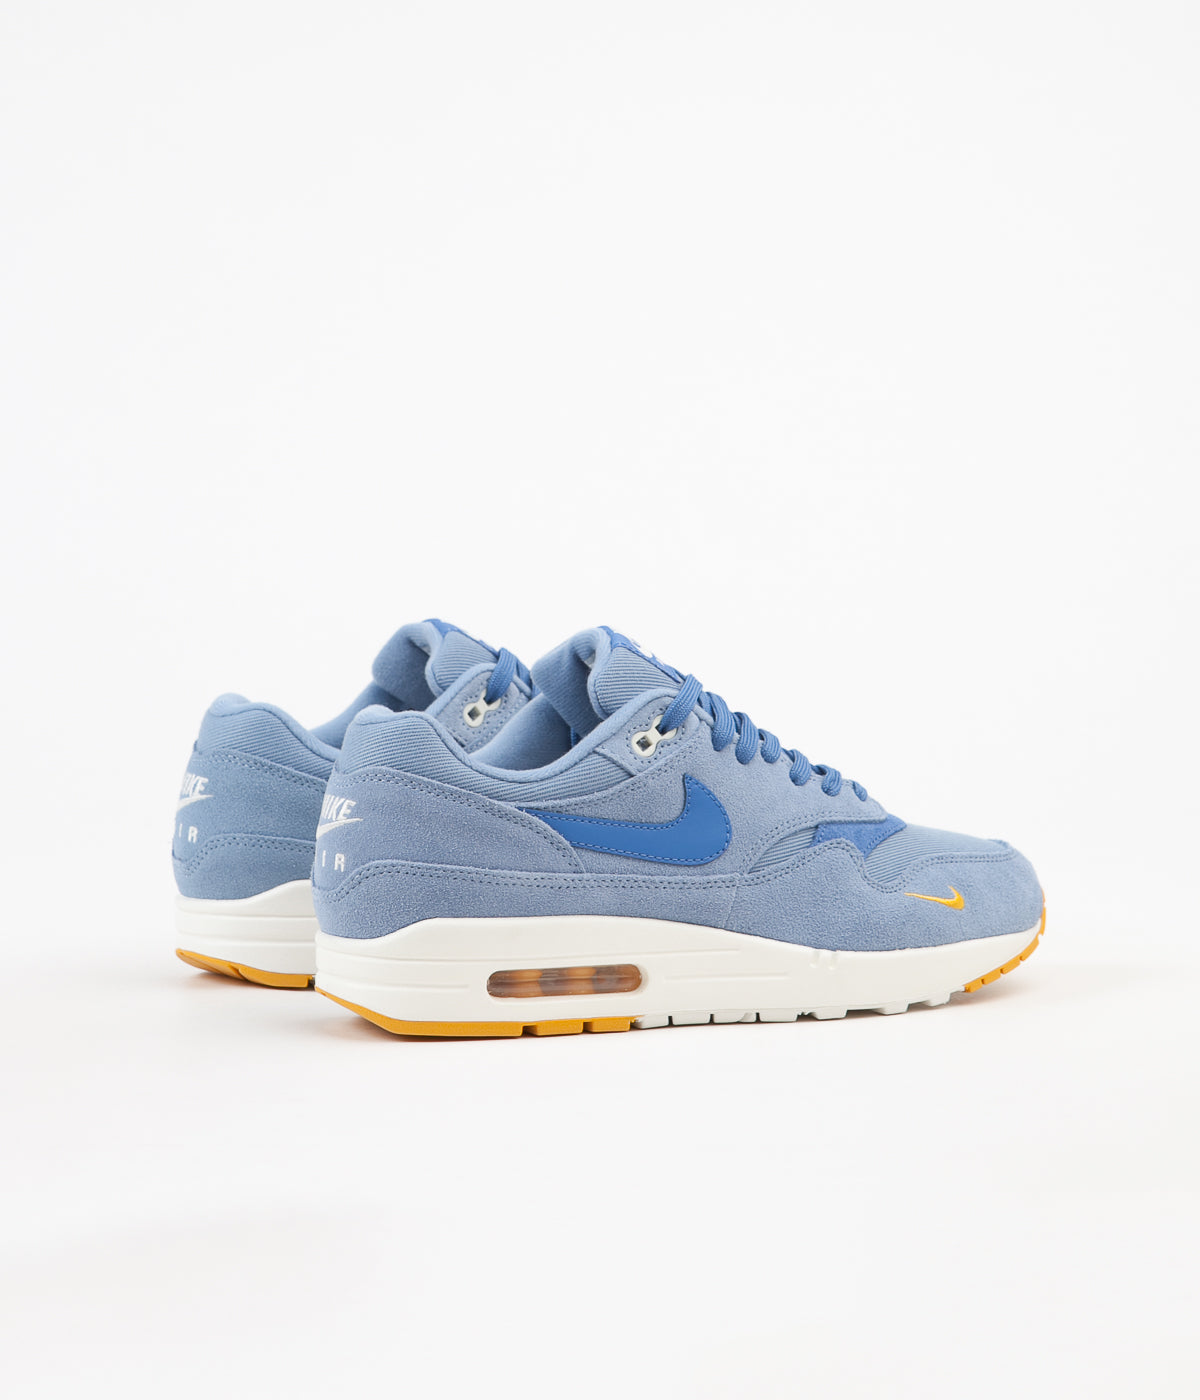 Nike Air Max 1 Premium Shoes Work Blue Mountain Blue